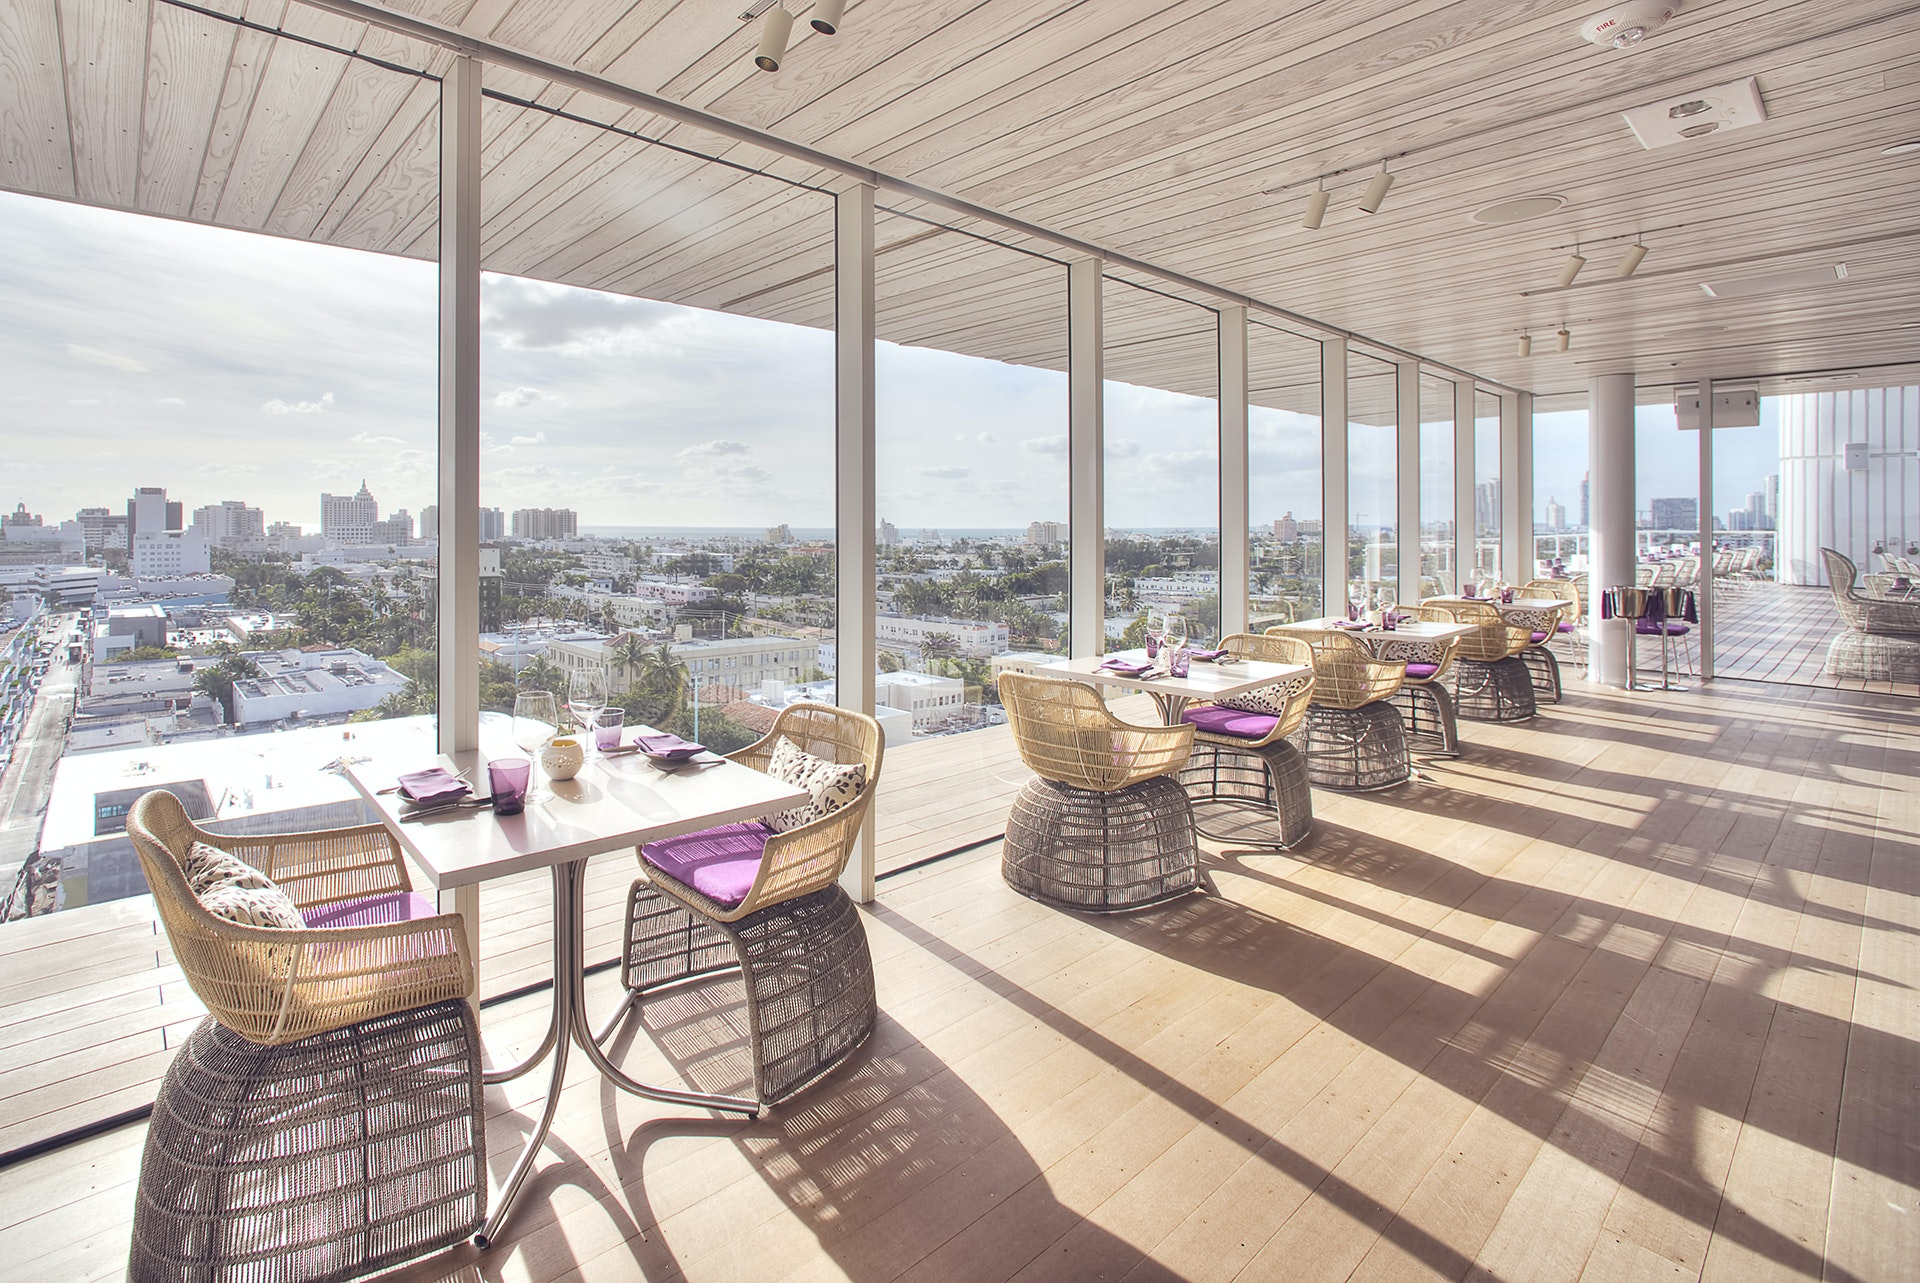 Indoor-outdoor restaurant Juvia boasts panoramic views of the ocean and downtown skyline.